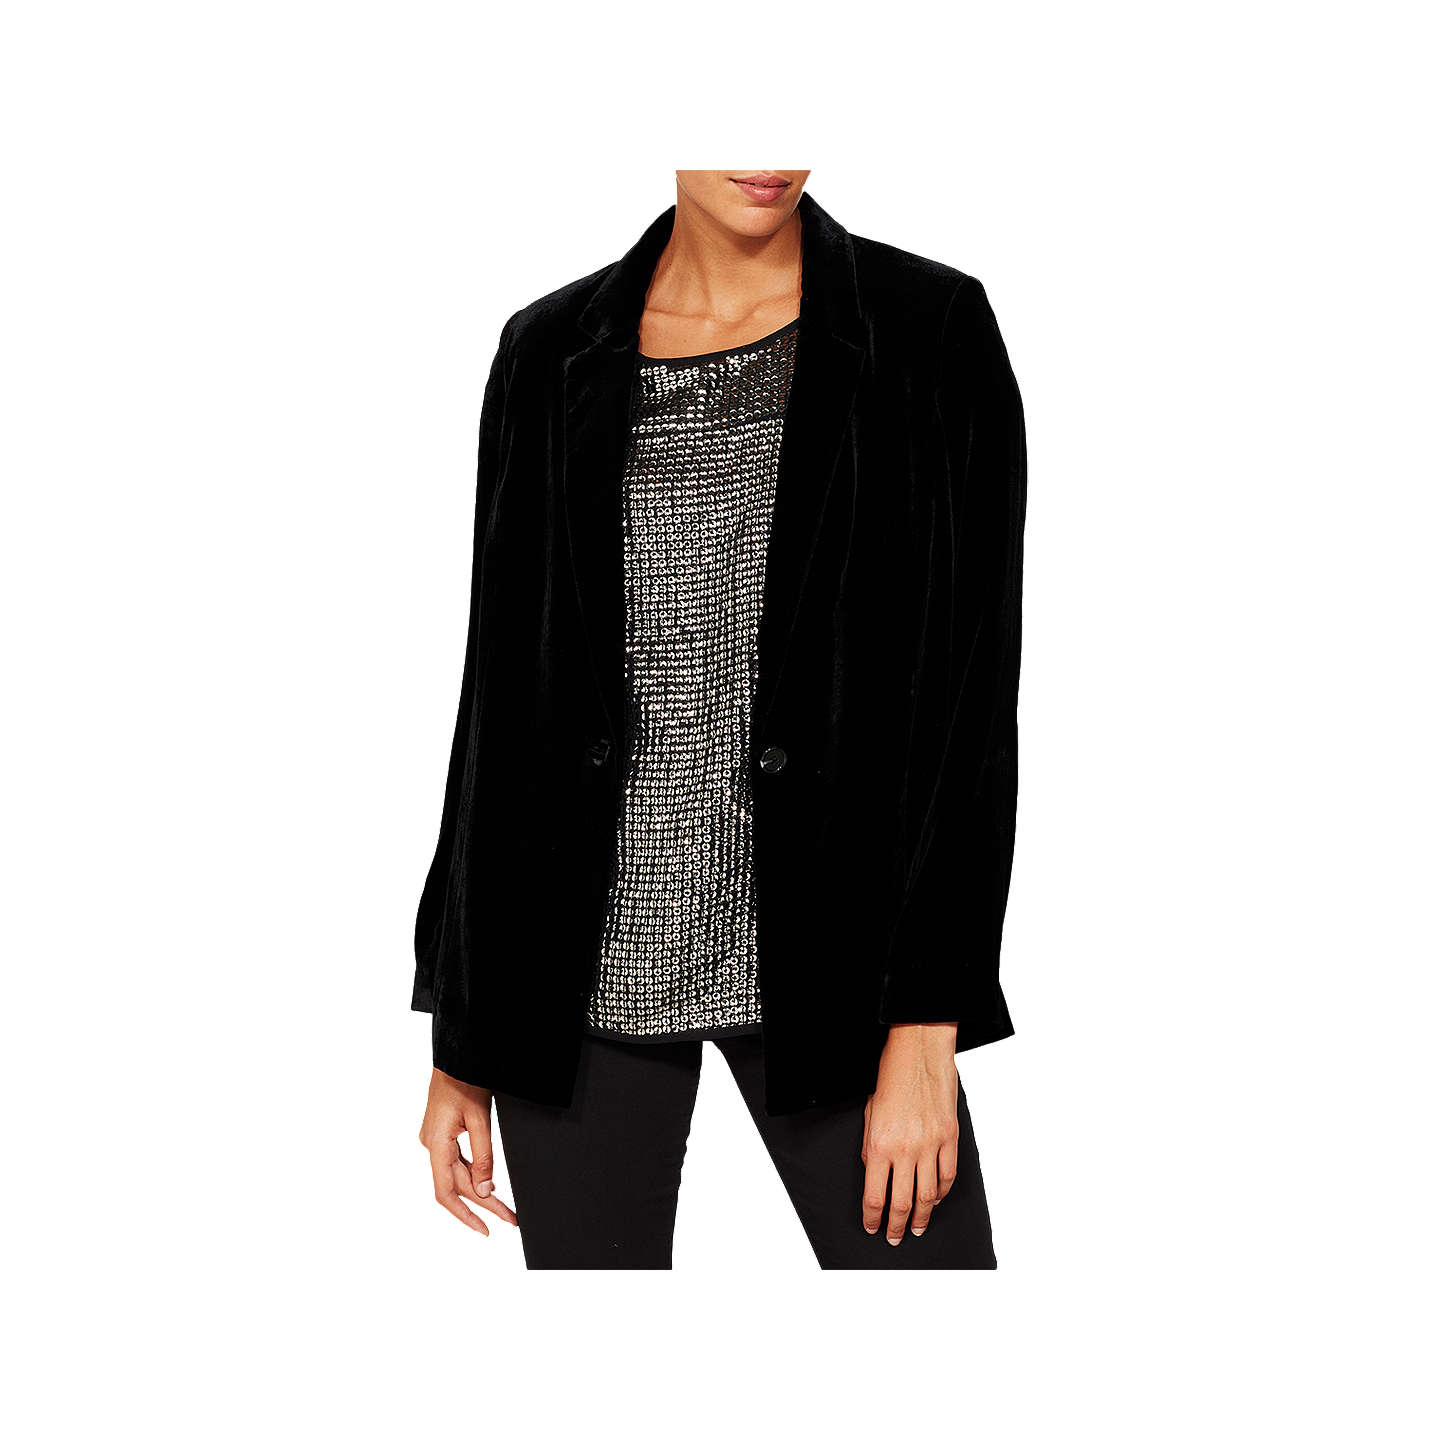 BuyMint Velvet Velvet Blazer, Black, 6 Online at johnlewis.com